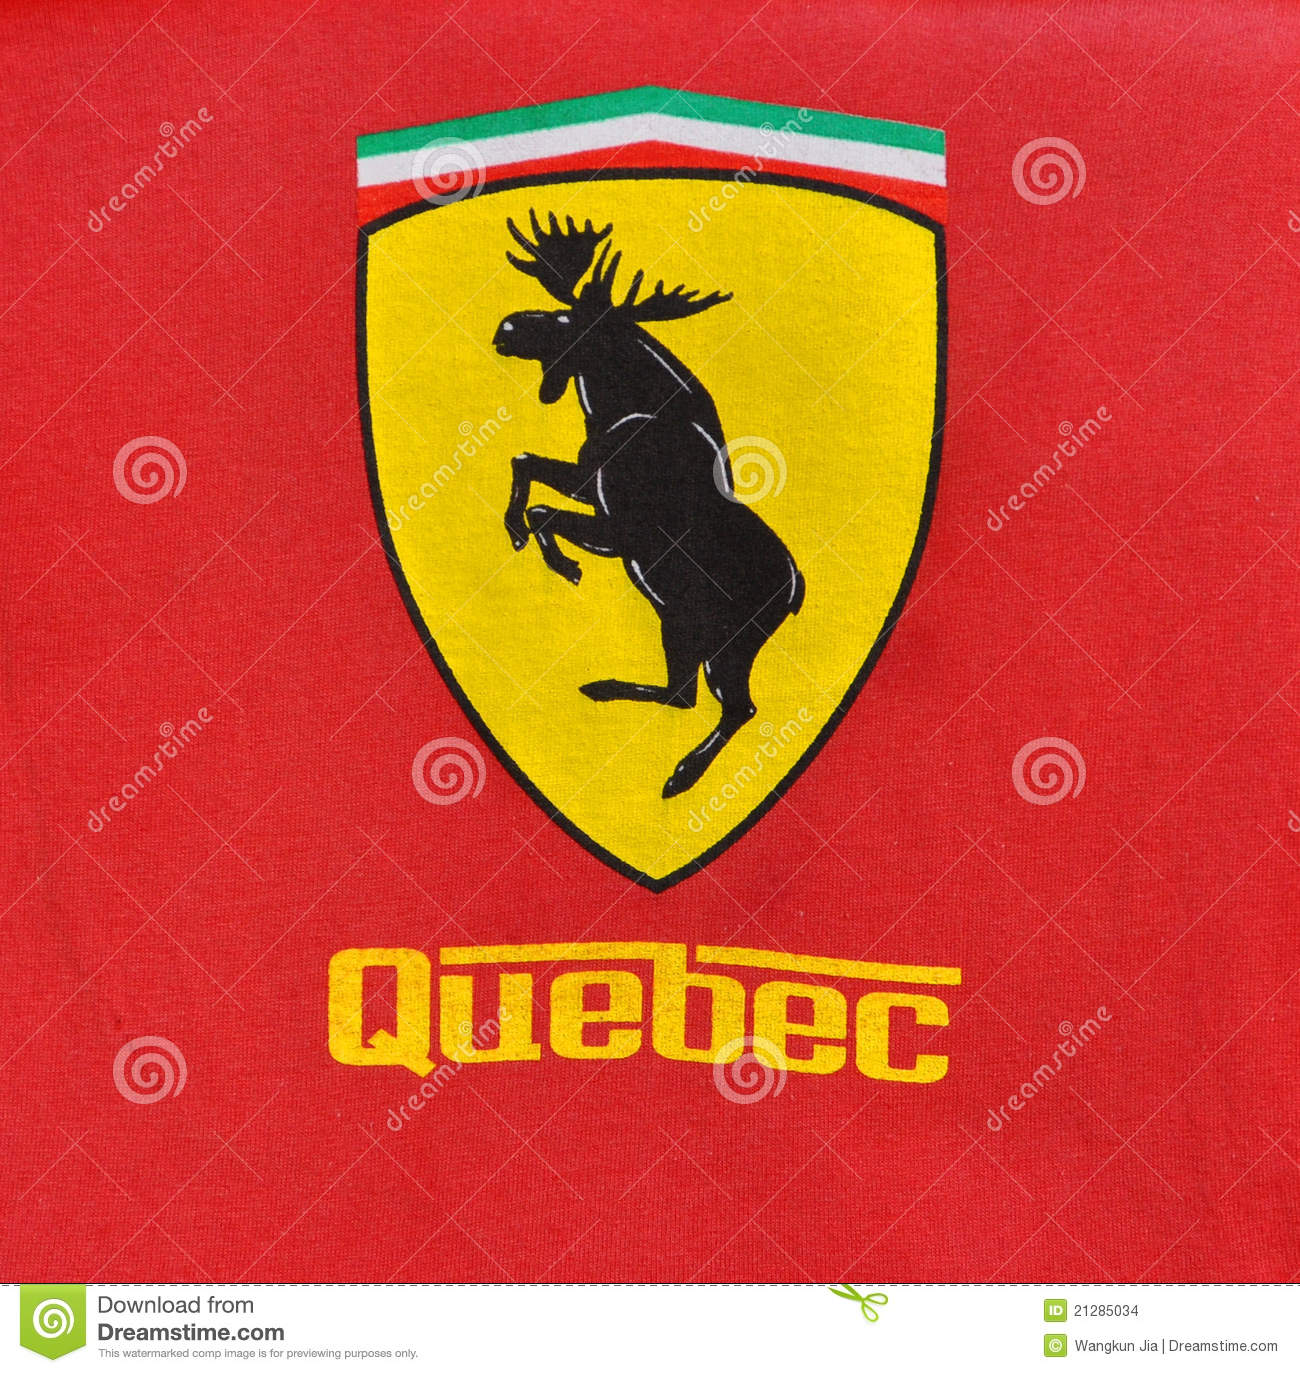 Ferrari logo stock photos download 1217 images ferrari style quebec logo with moose in the center stock images buycottarizona Choice Image